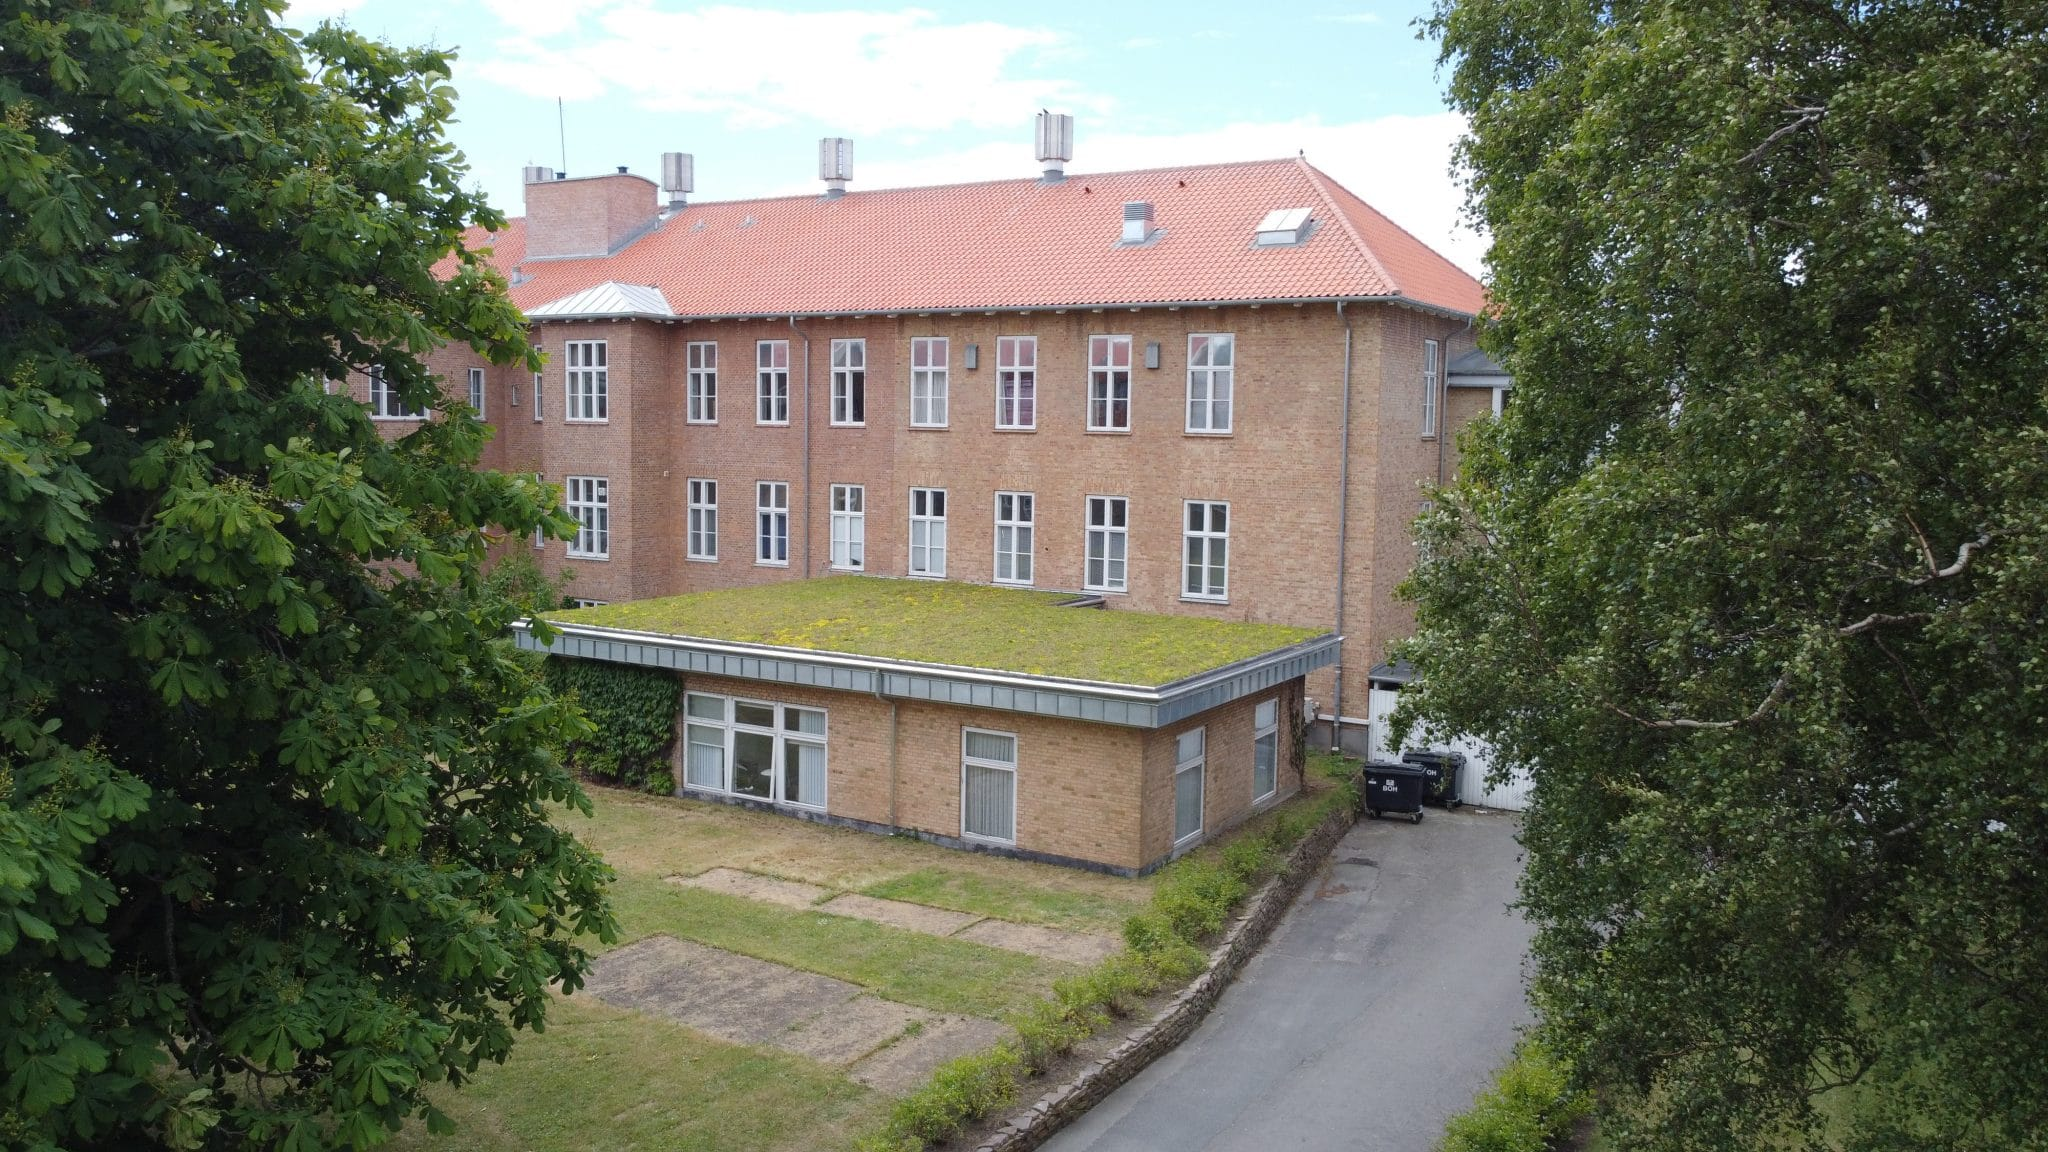 Tagrenovering på Bornholms Hospital